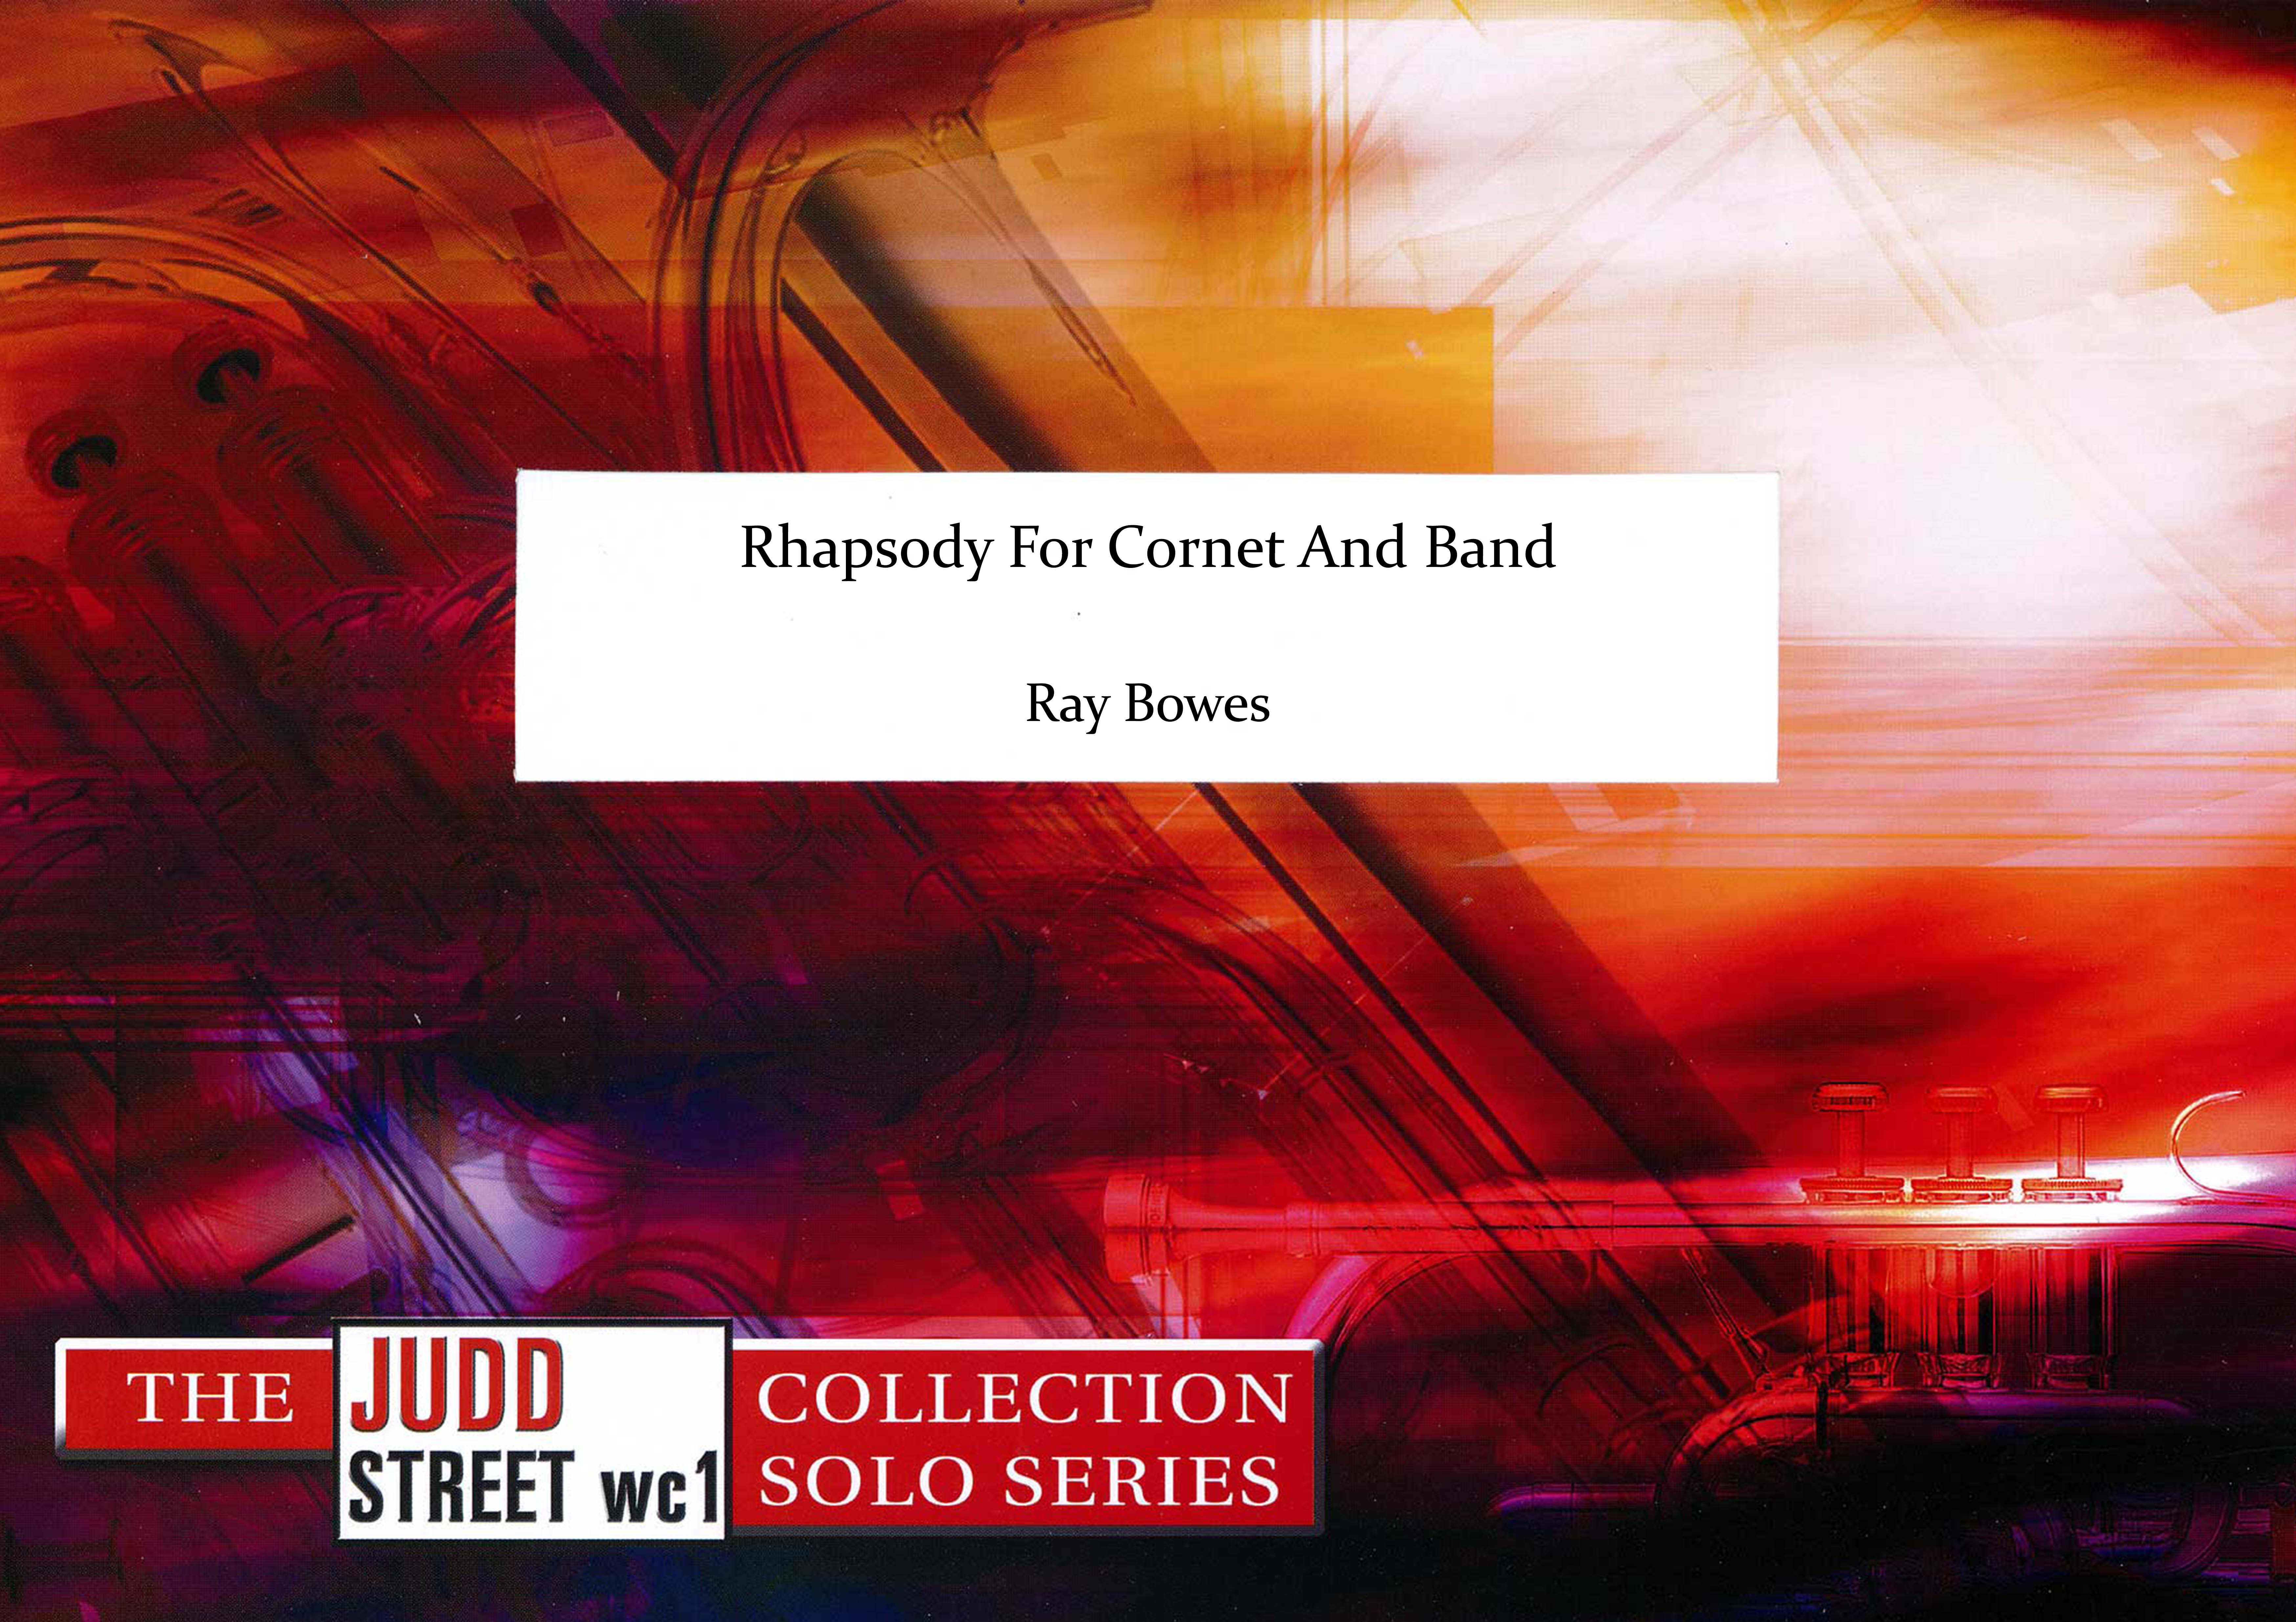 Rhapsody For Cornet And Band (Cornet Solo with Brass Band - Score and Parts)